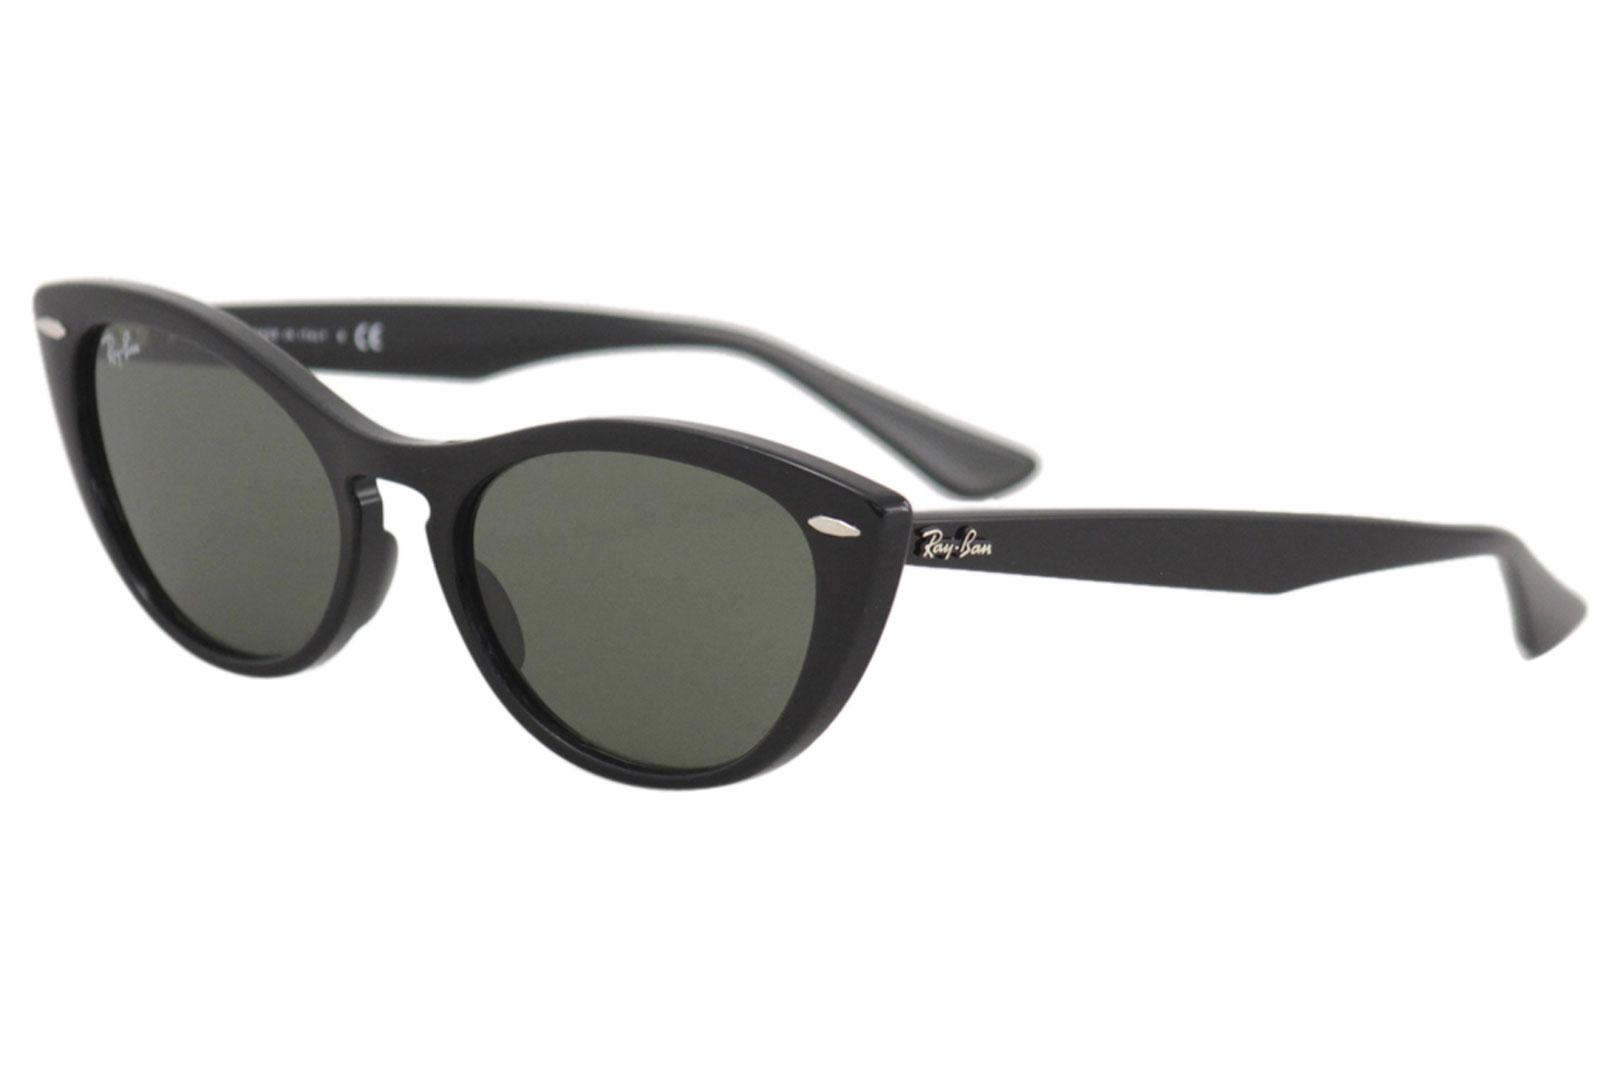 7471c2eda7 Ray Ban Women s Nina RB4314N RB 4314 N Fashion Cat Eye RayBan Sunglasses